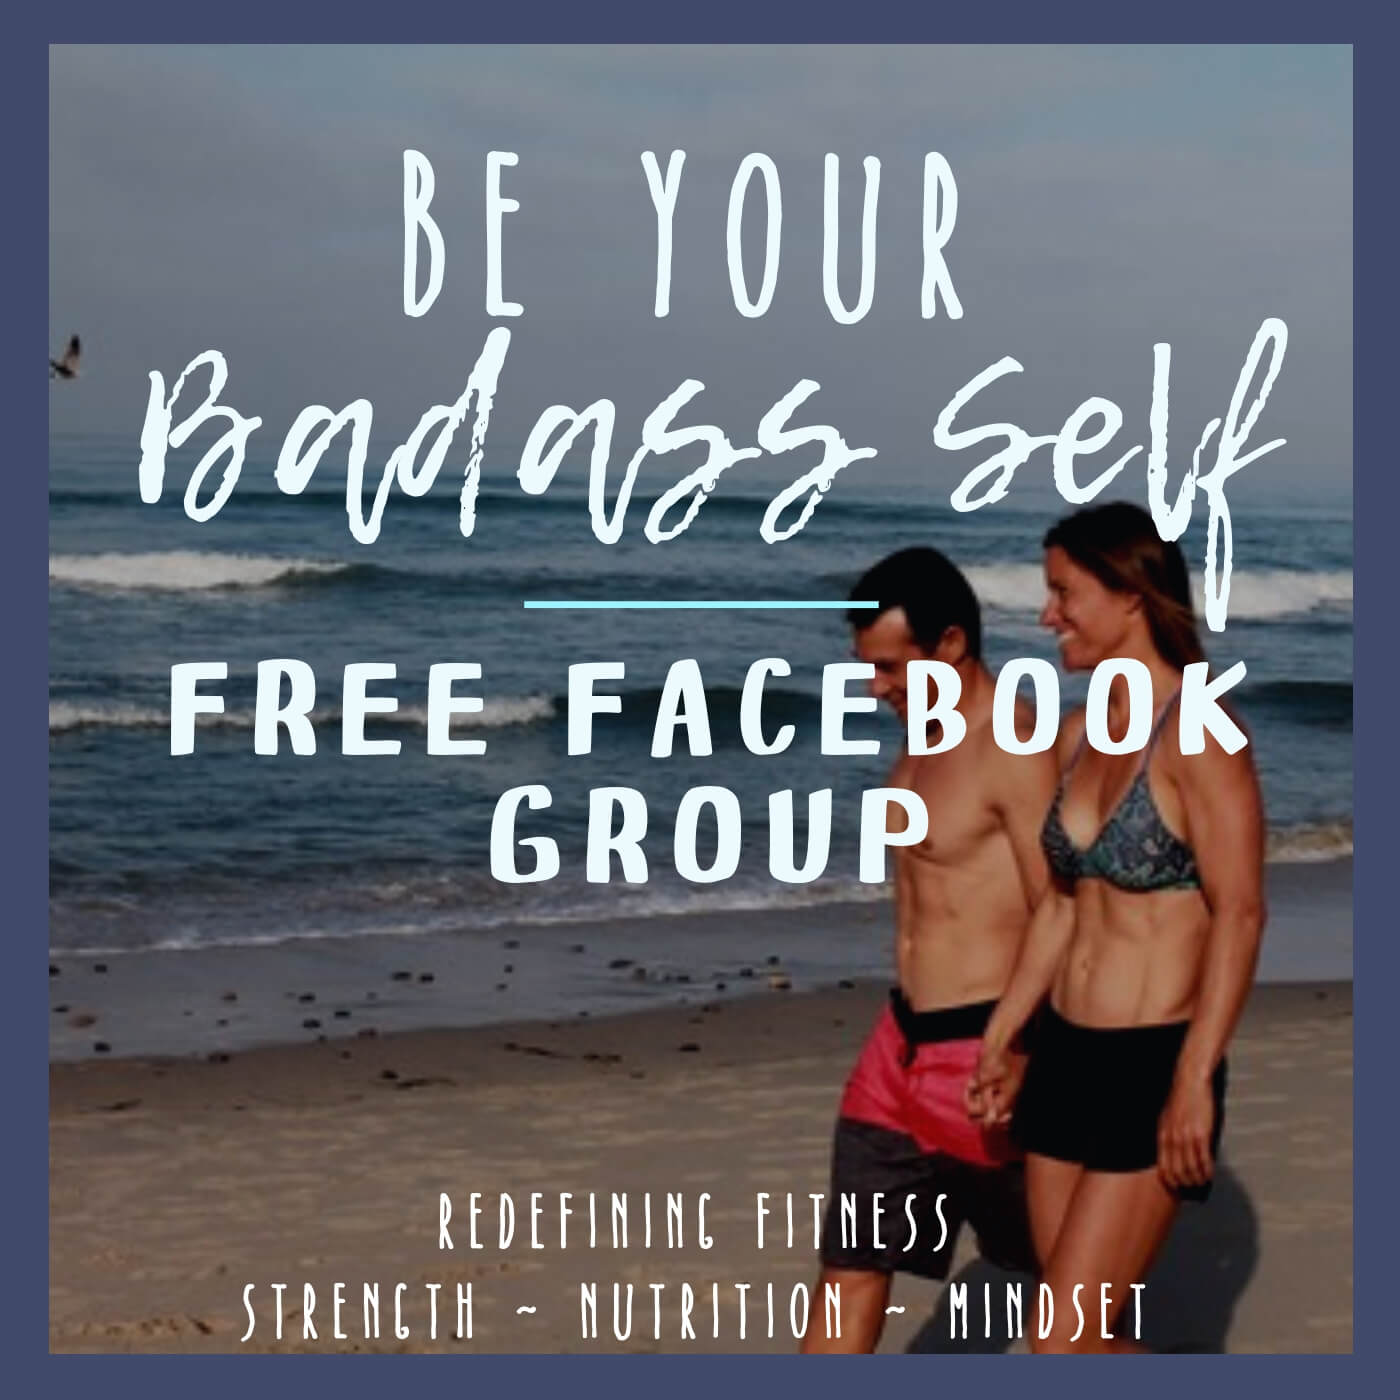 Join our free Facebook group for tips on strength training, nutrition, and creating a motivated mindset.